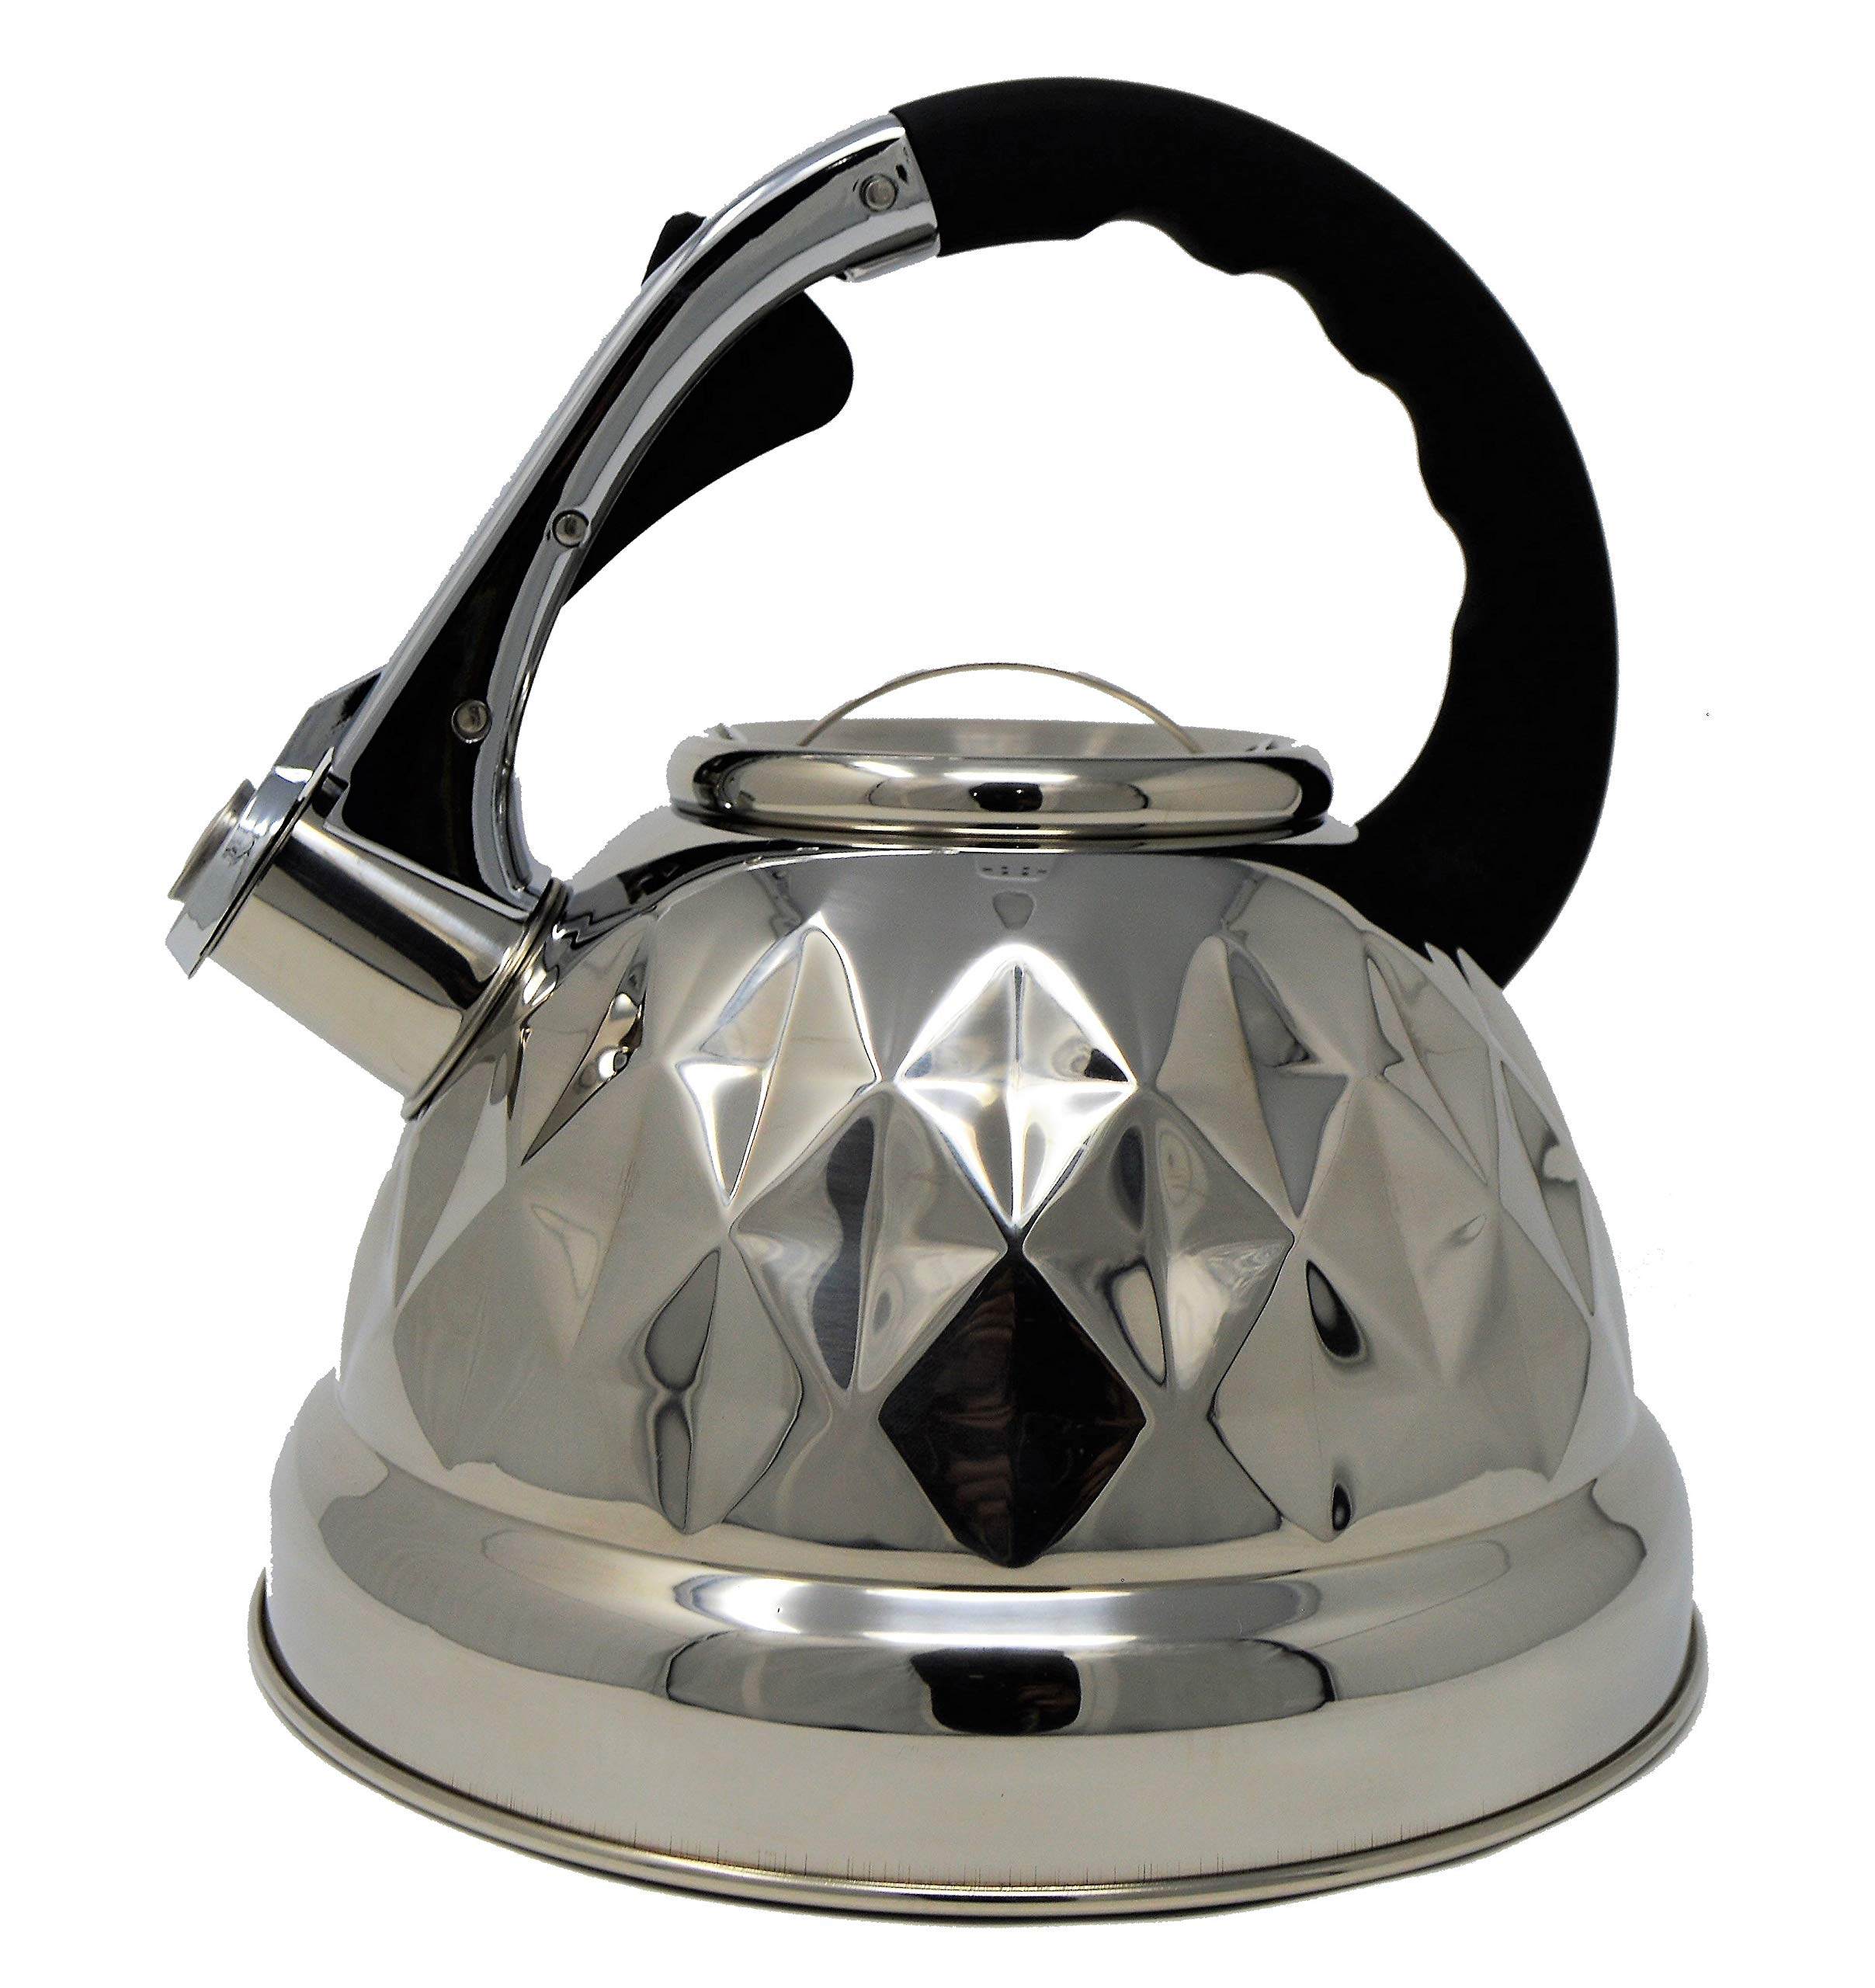 Black Whistling Tea Kettle Pot - Aviation Grade Stainless Steel For All Stovetops With Layered Capsule Bottom For Faster Water Boiling When Preparing English Tea or Coffee, 3.2 Liters